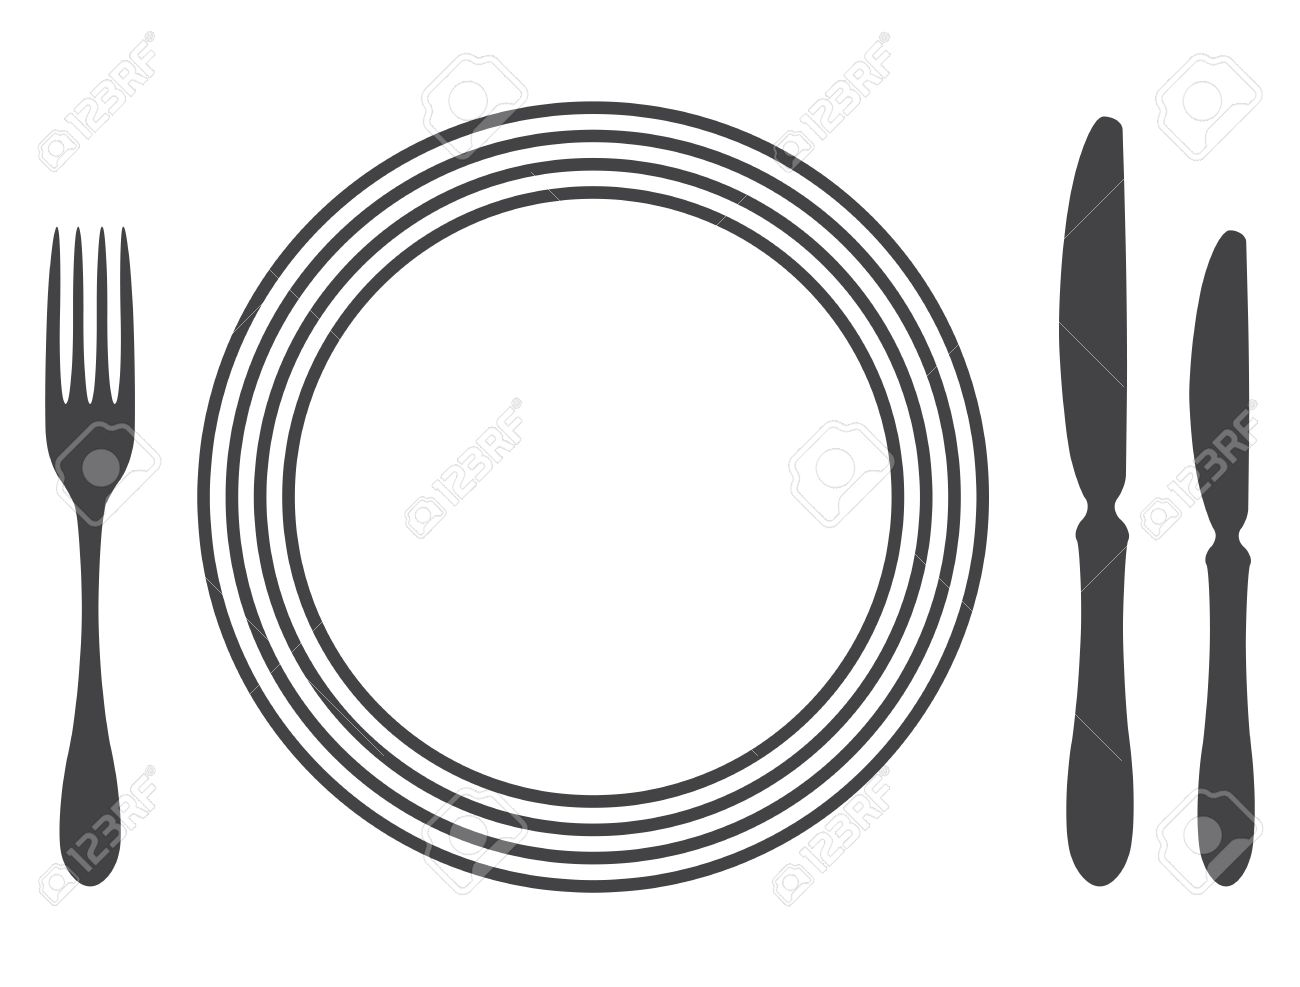 Etiquette Proper Table Setting Stock Vector   17302510Etiquette Proper Table Setting Royalty Free Cliparts  Vectors  And  . Proper Table Setting Pictures. Home Design Ideas